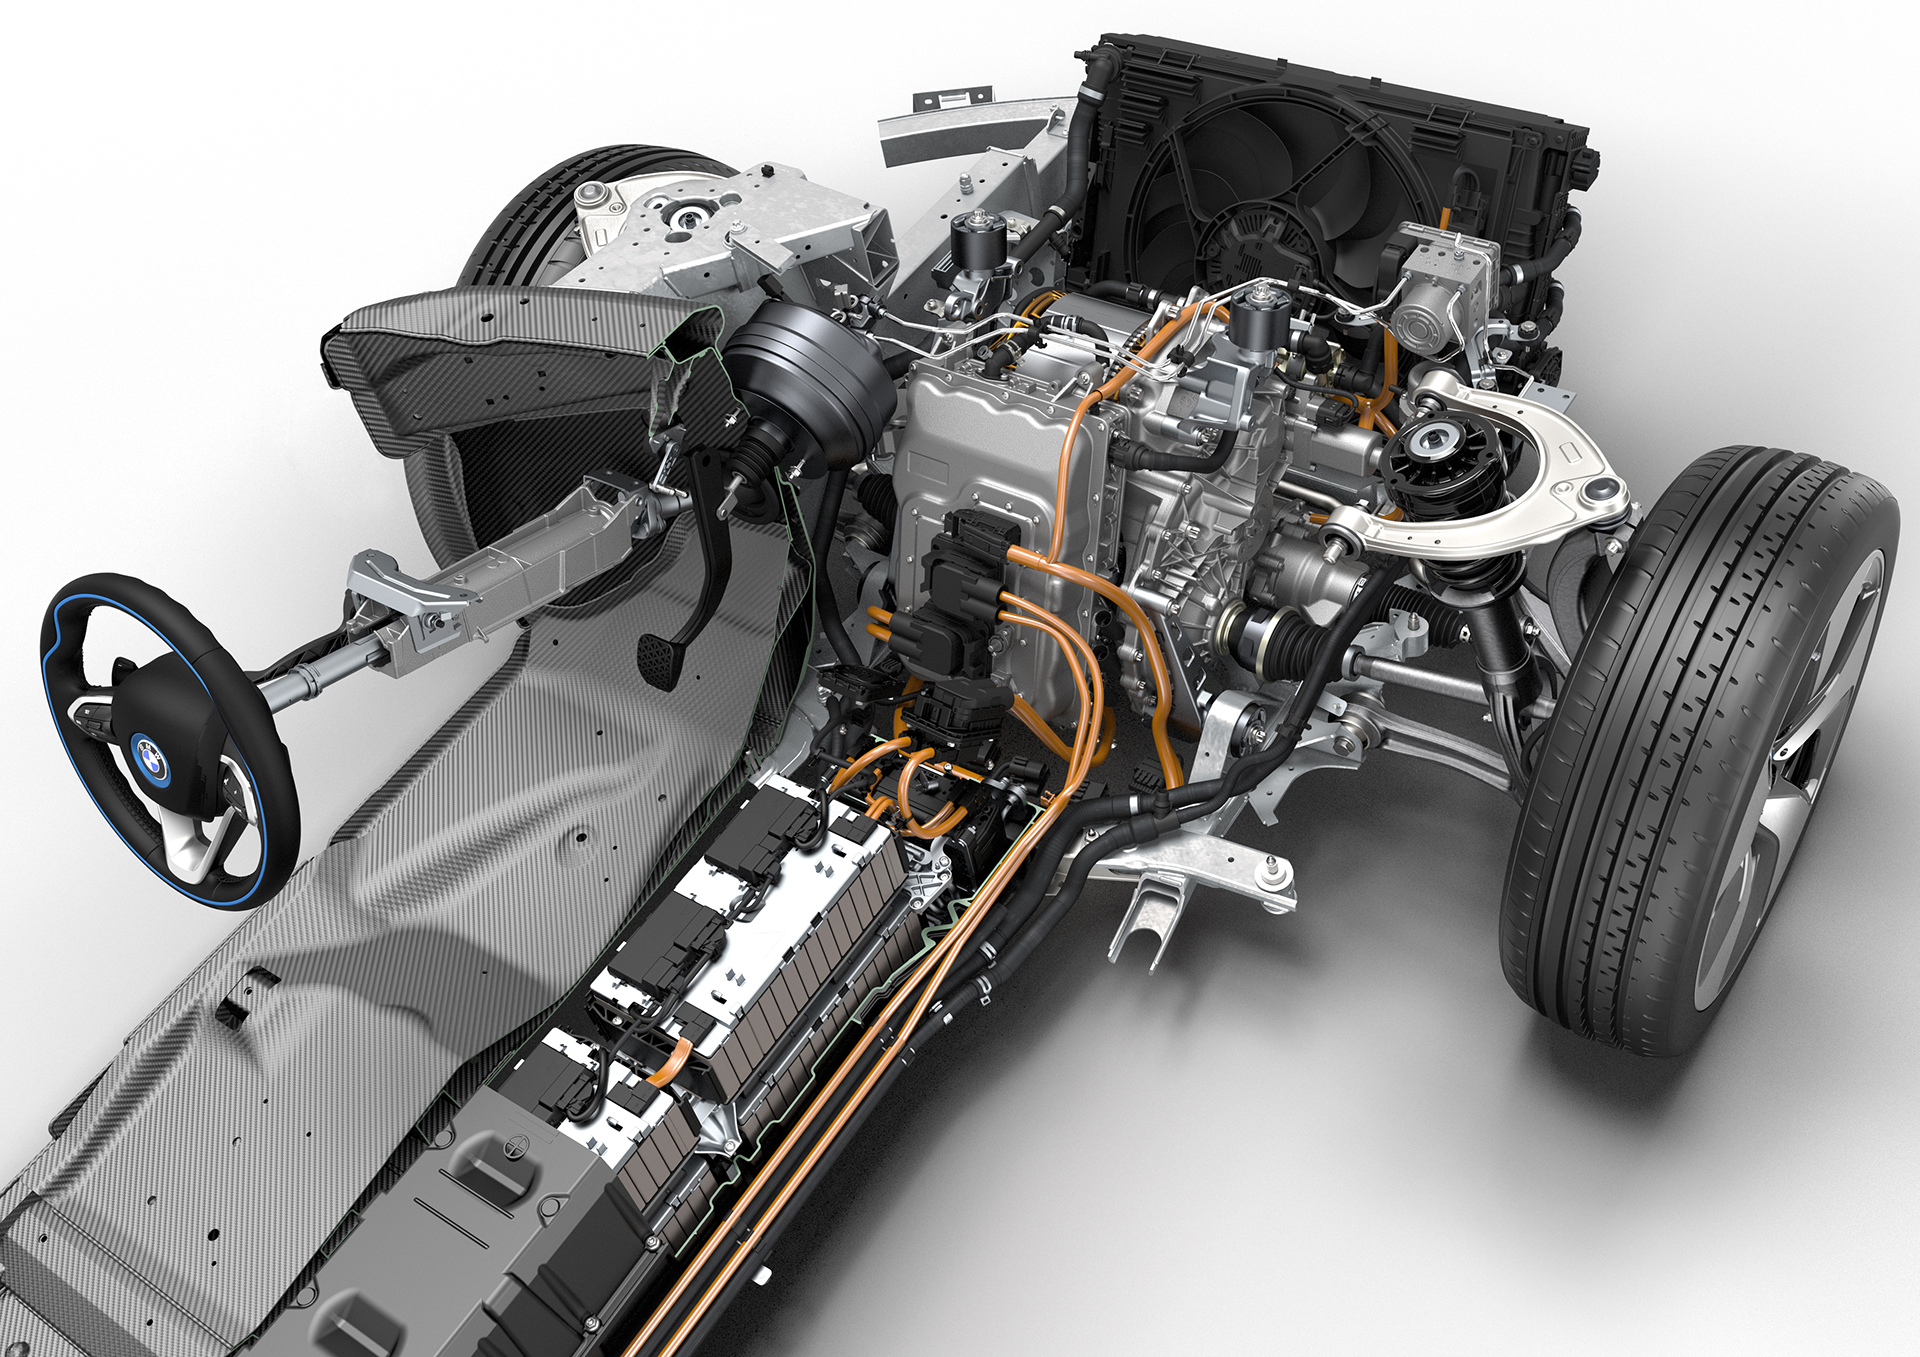 BMW i8 - inside powertrain